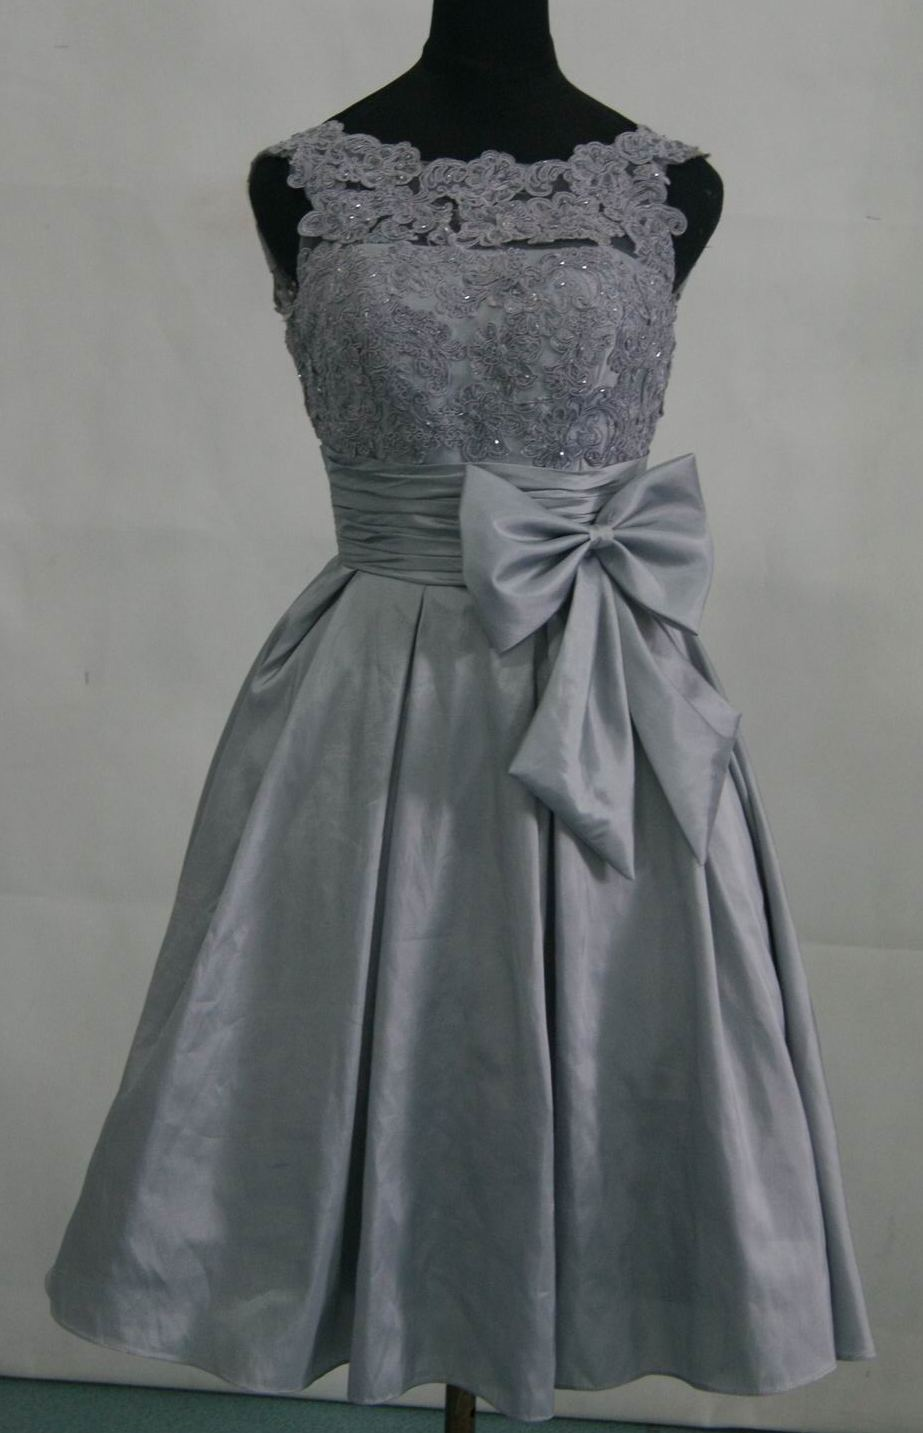 Dress prom lace tops grey bridesmaid dresses prom for Silver wedding dresses 25th anniversary